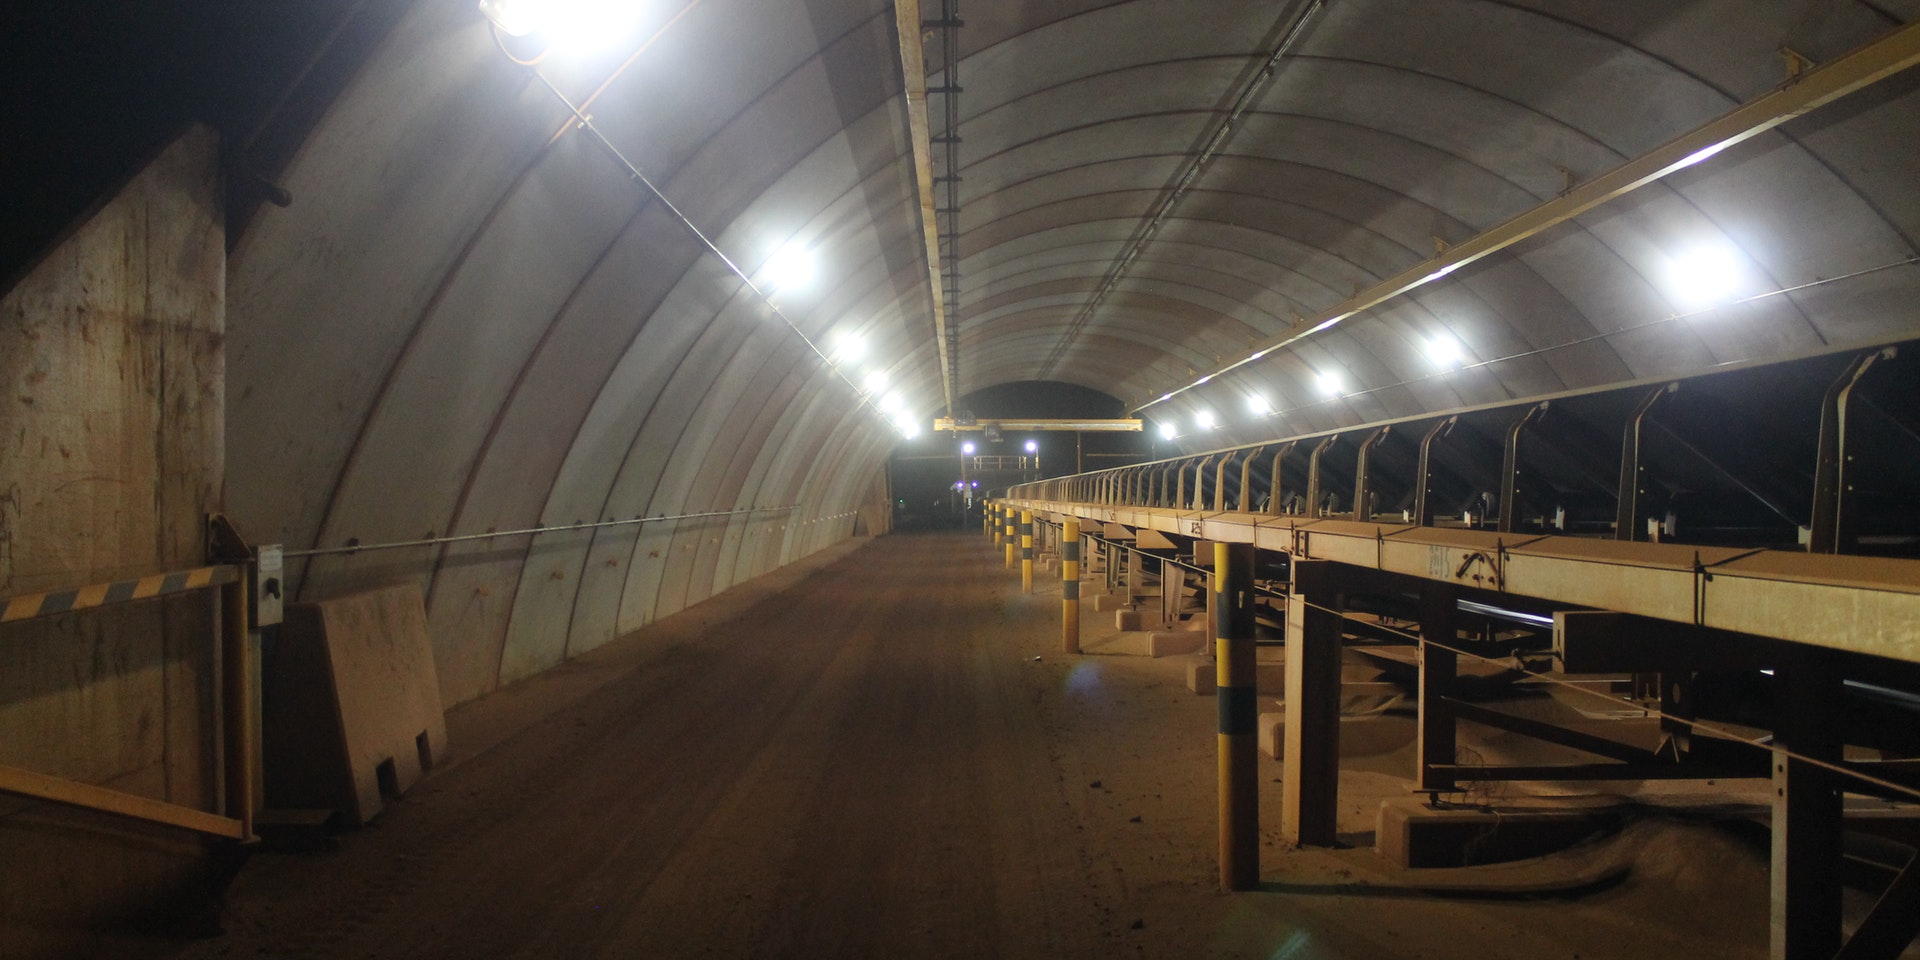 TNR LED Tunnel Ray in application, installed on a conveyor in a tunnel